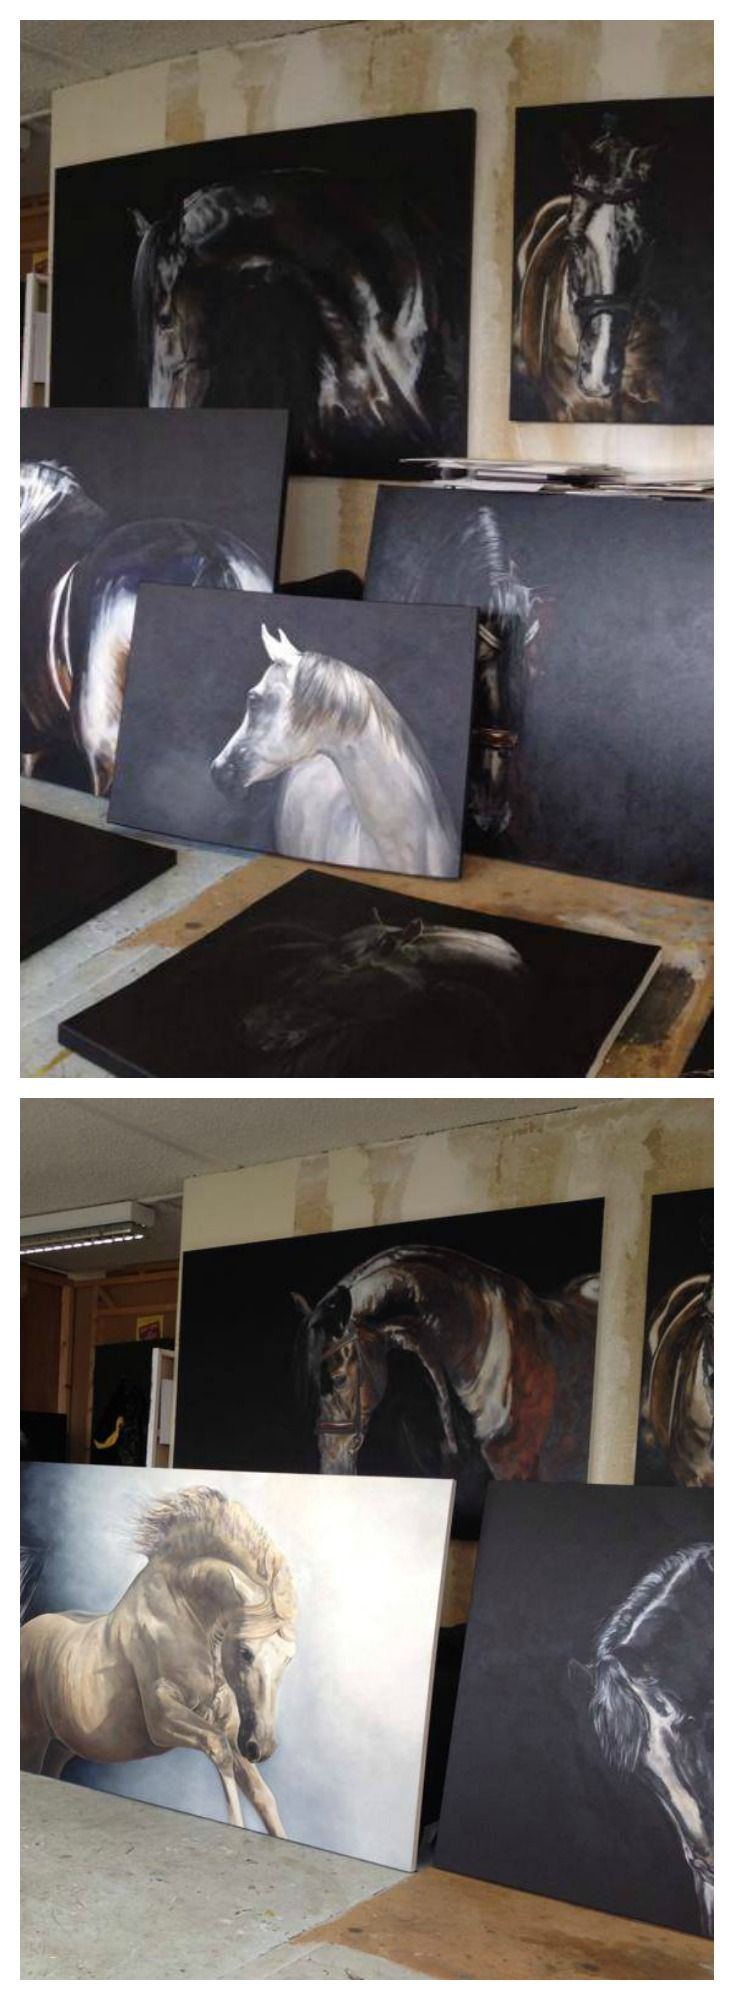 horse, Art studio Tony O'Connor whitetreestudio.ie . Please also visit www.JustForYouPropheticArt.com for colorful, inspirational art and stories. Thank you so much!